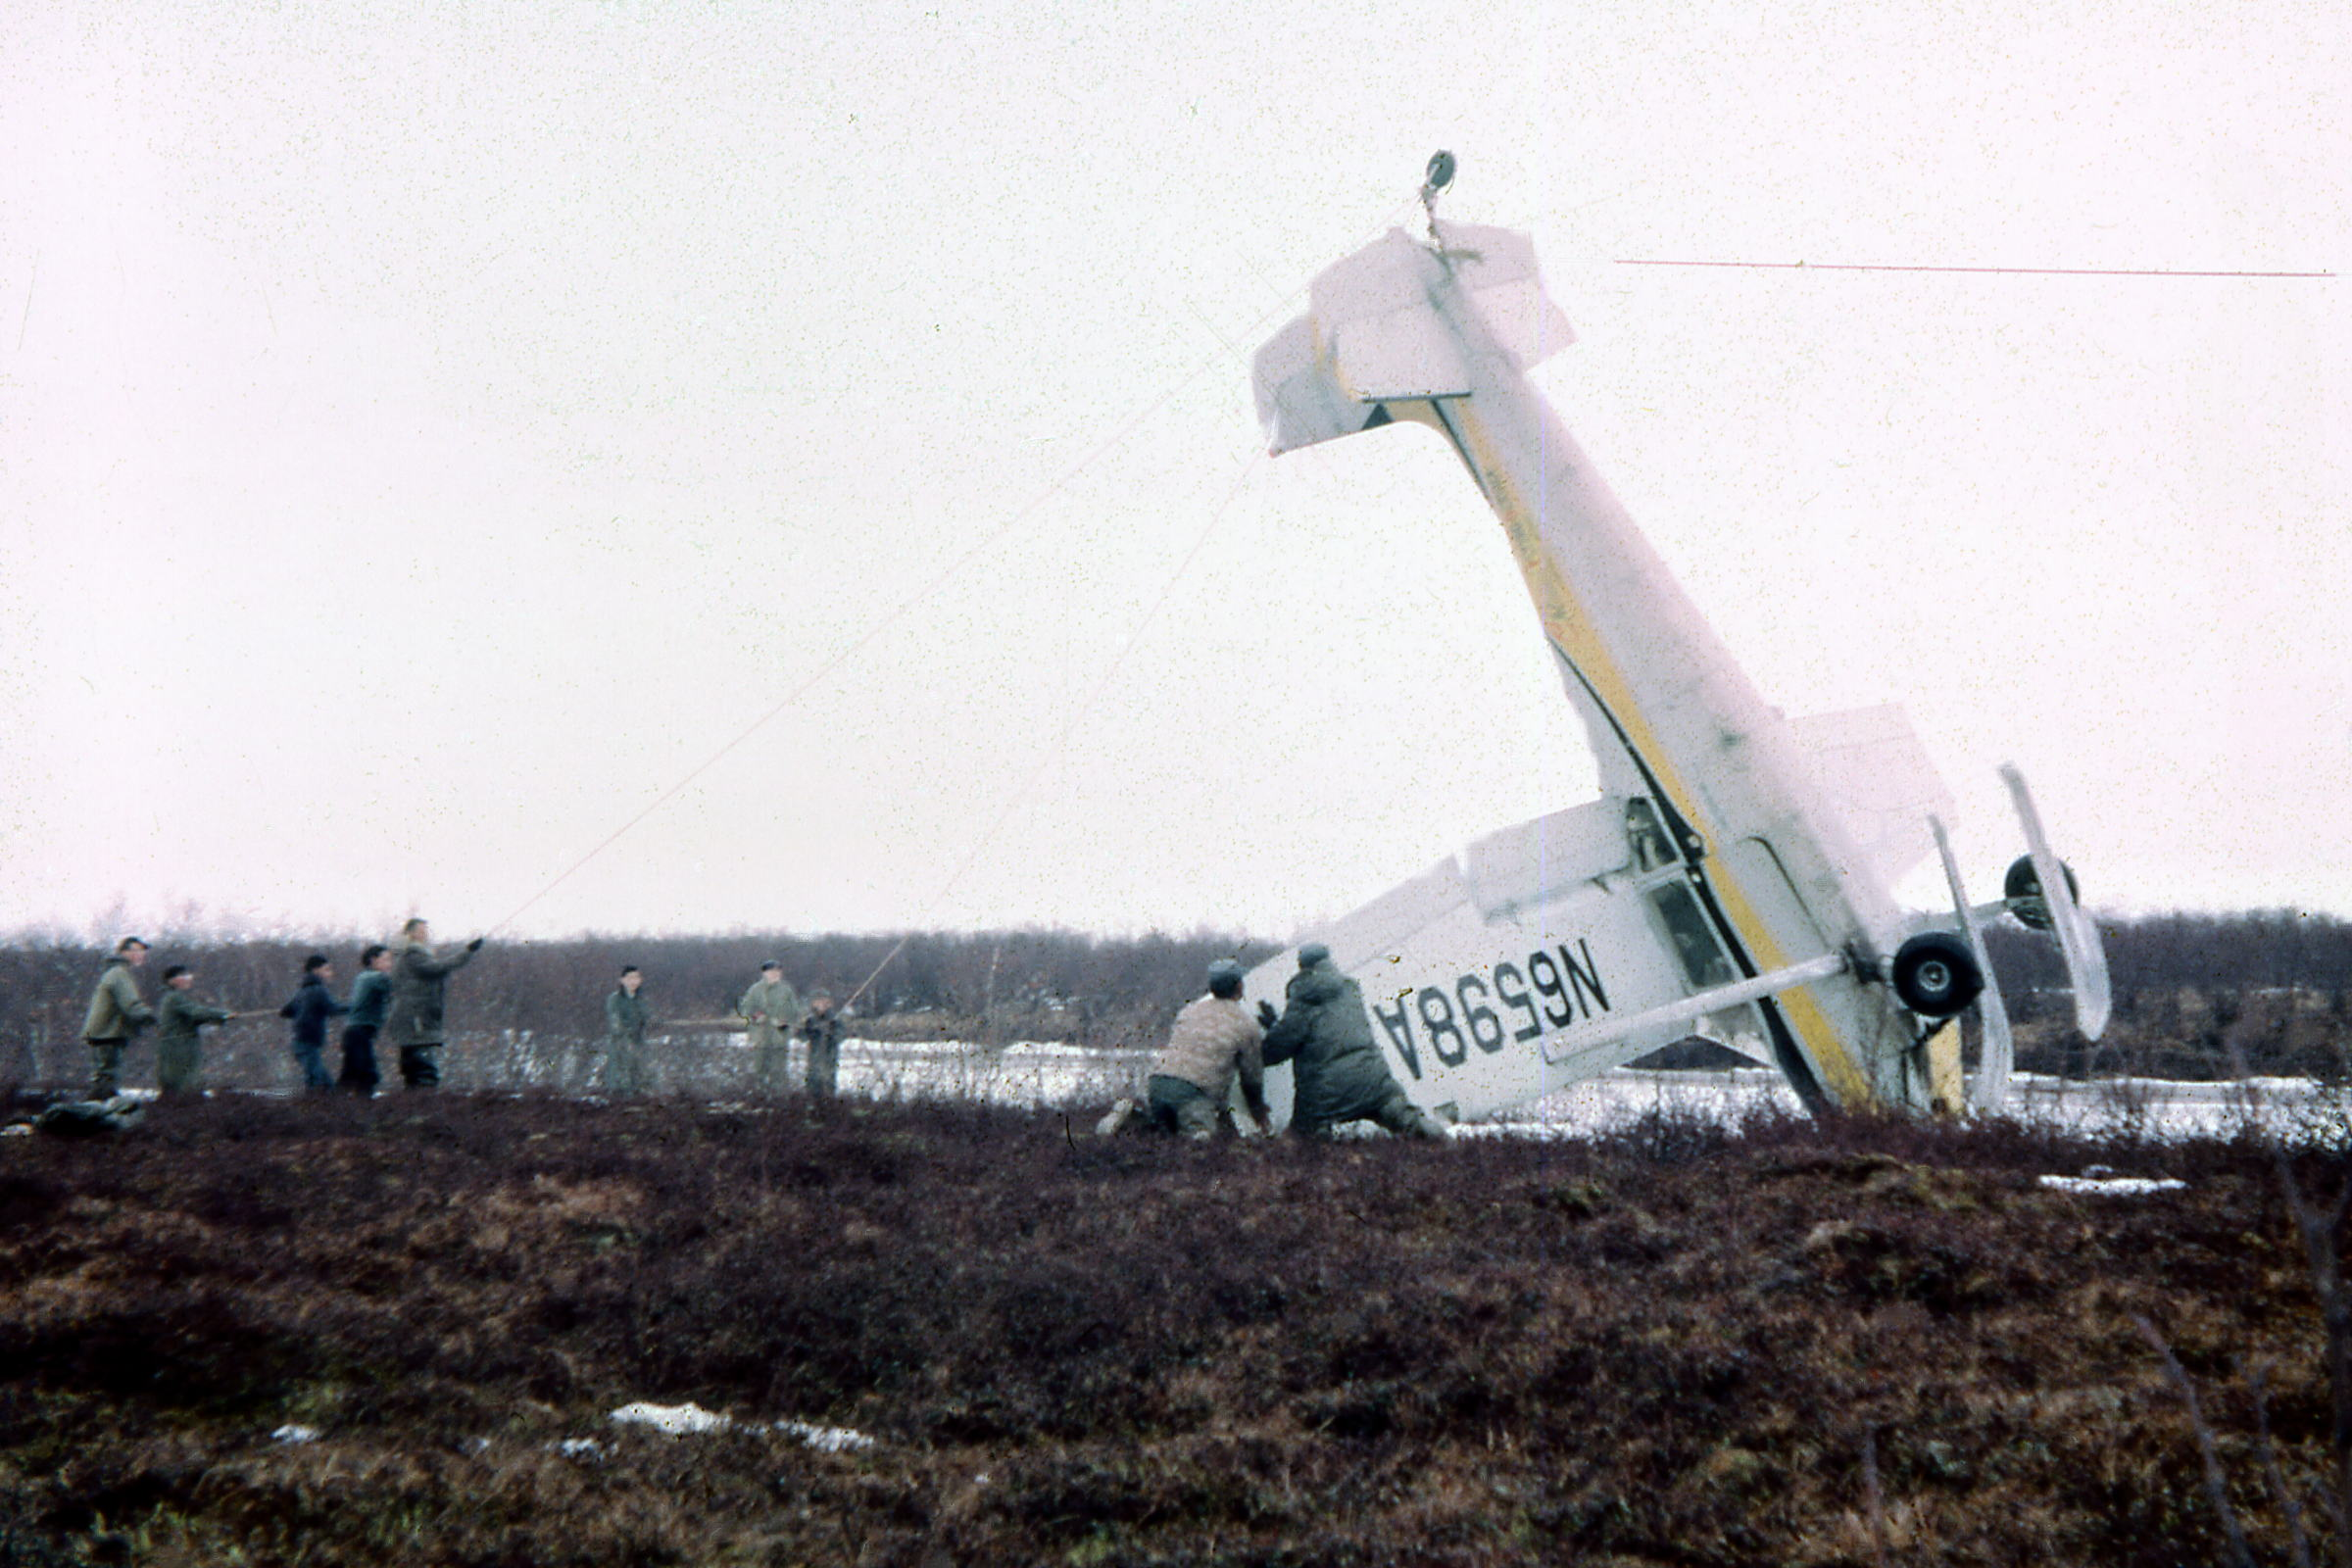 1964 Ketchum Air crash